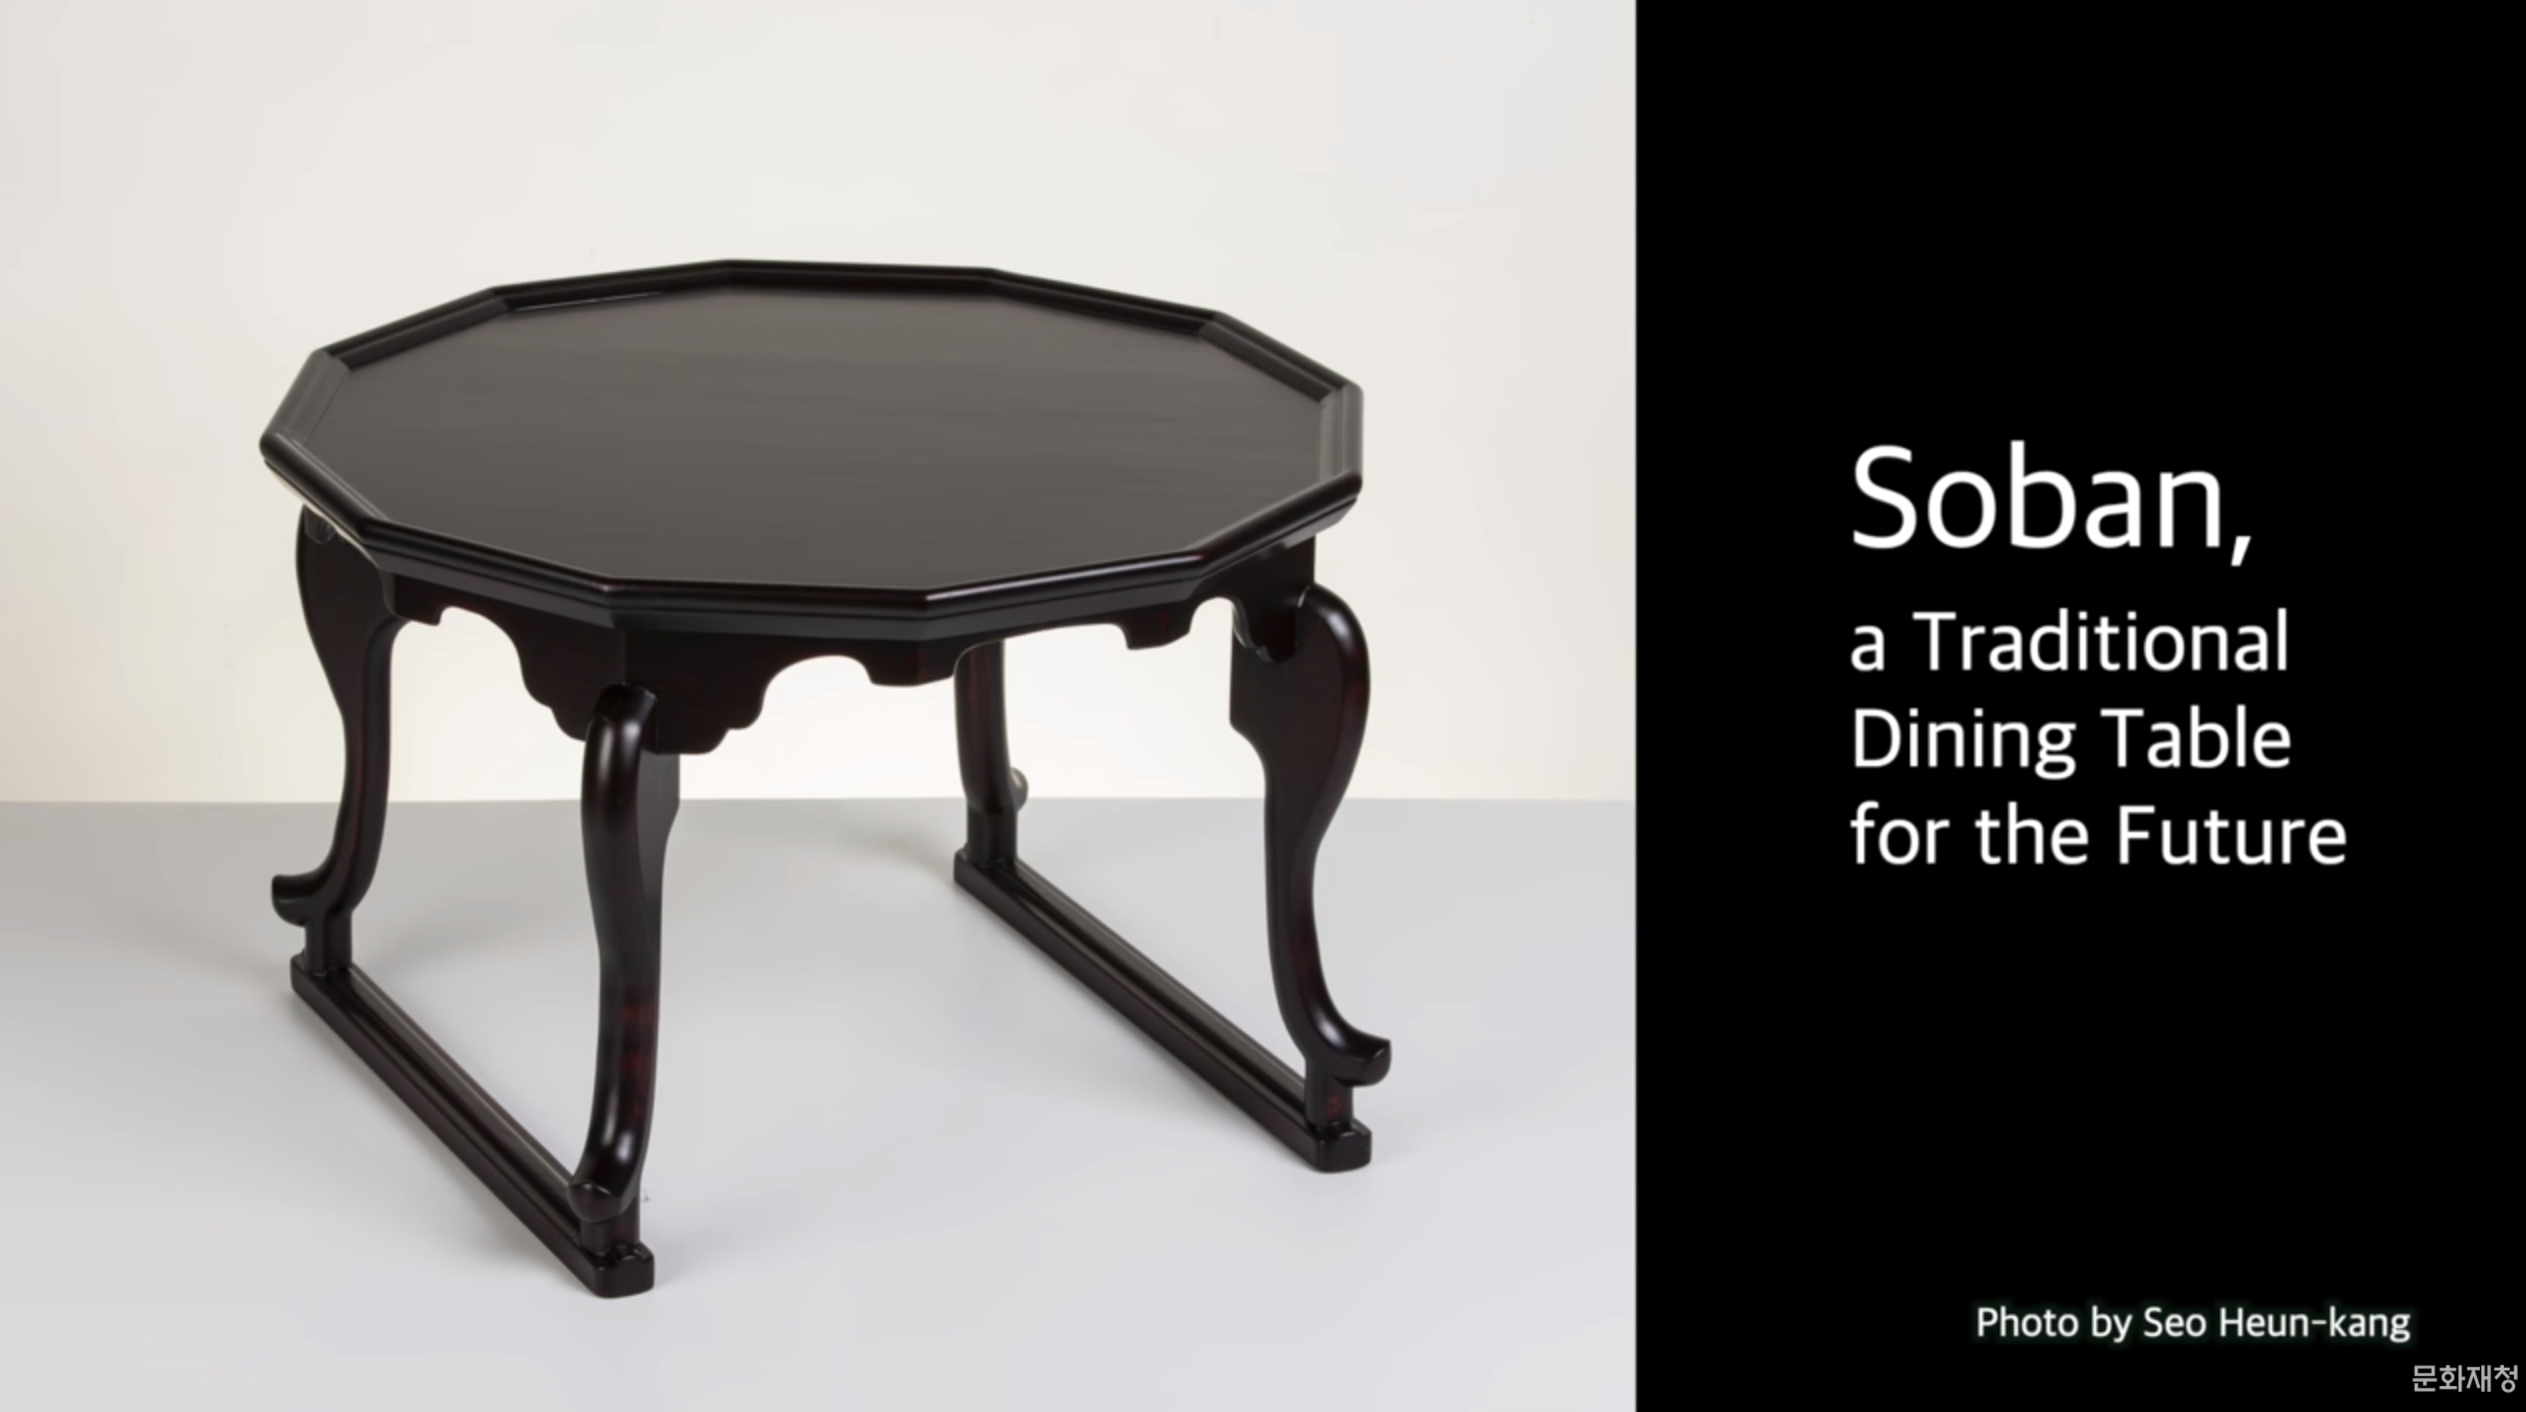 Soban, a Traditional Dining Table for the Future image